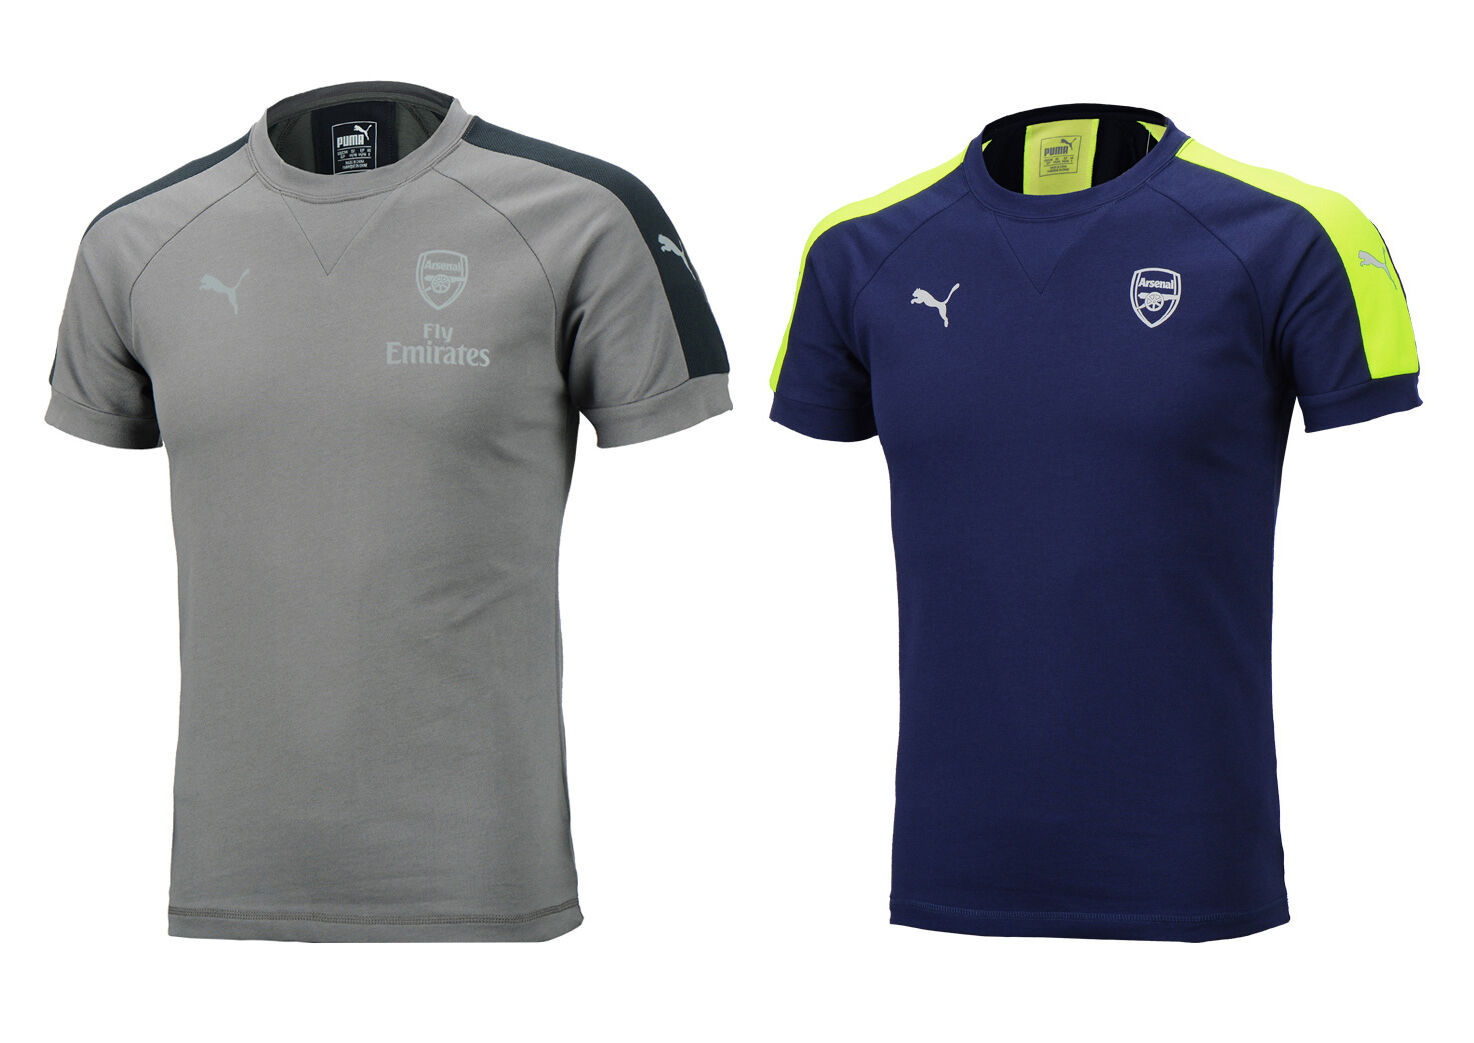 Puma Arsenal Casual Performance TShirts 74977717 Soccer Training Football Top